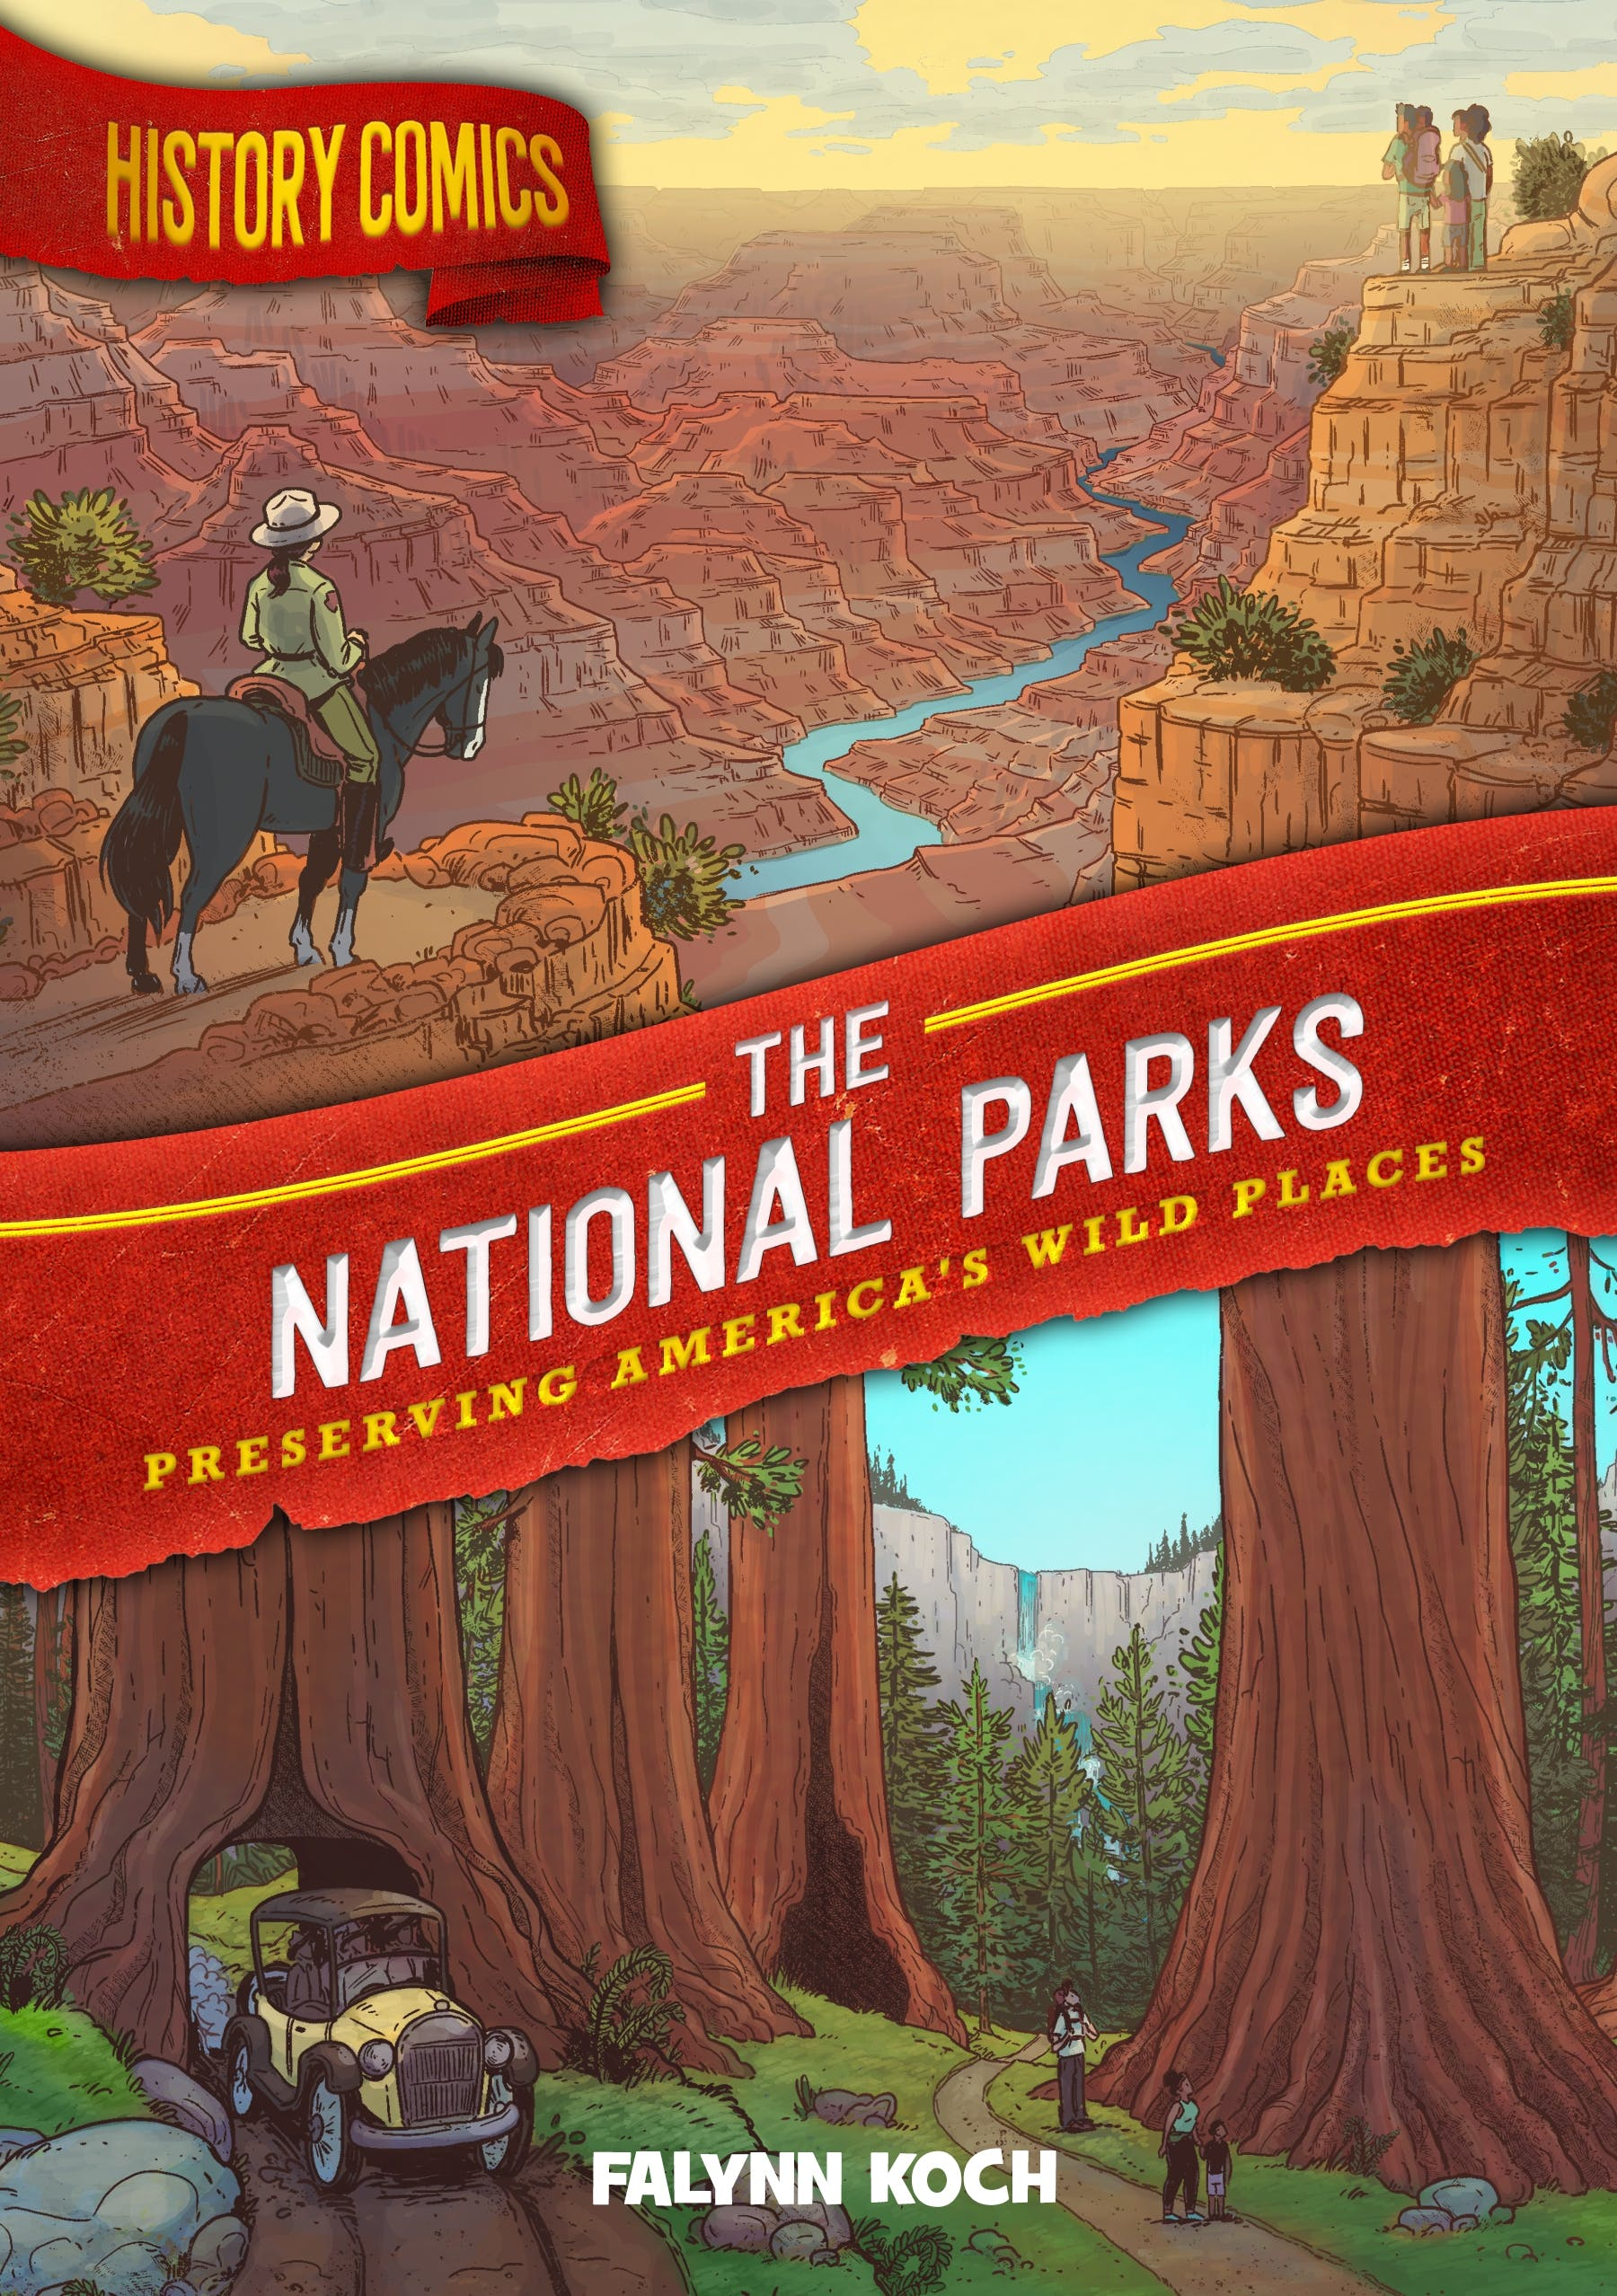 Image of History Comics: The National Parks